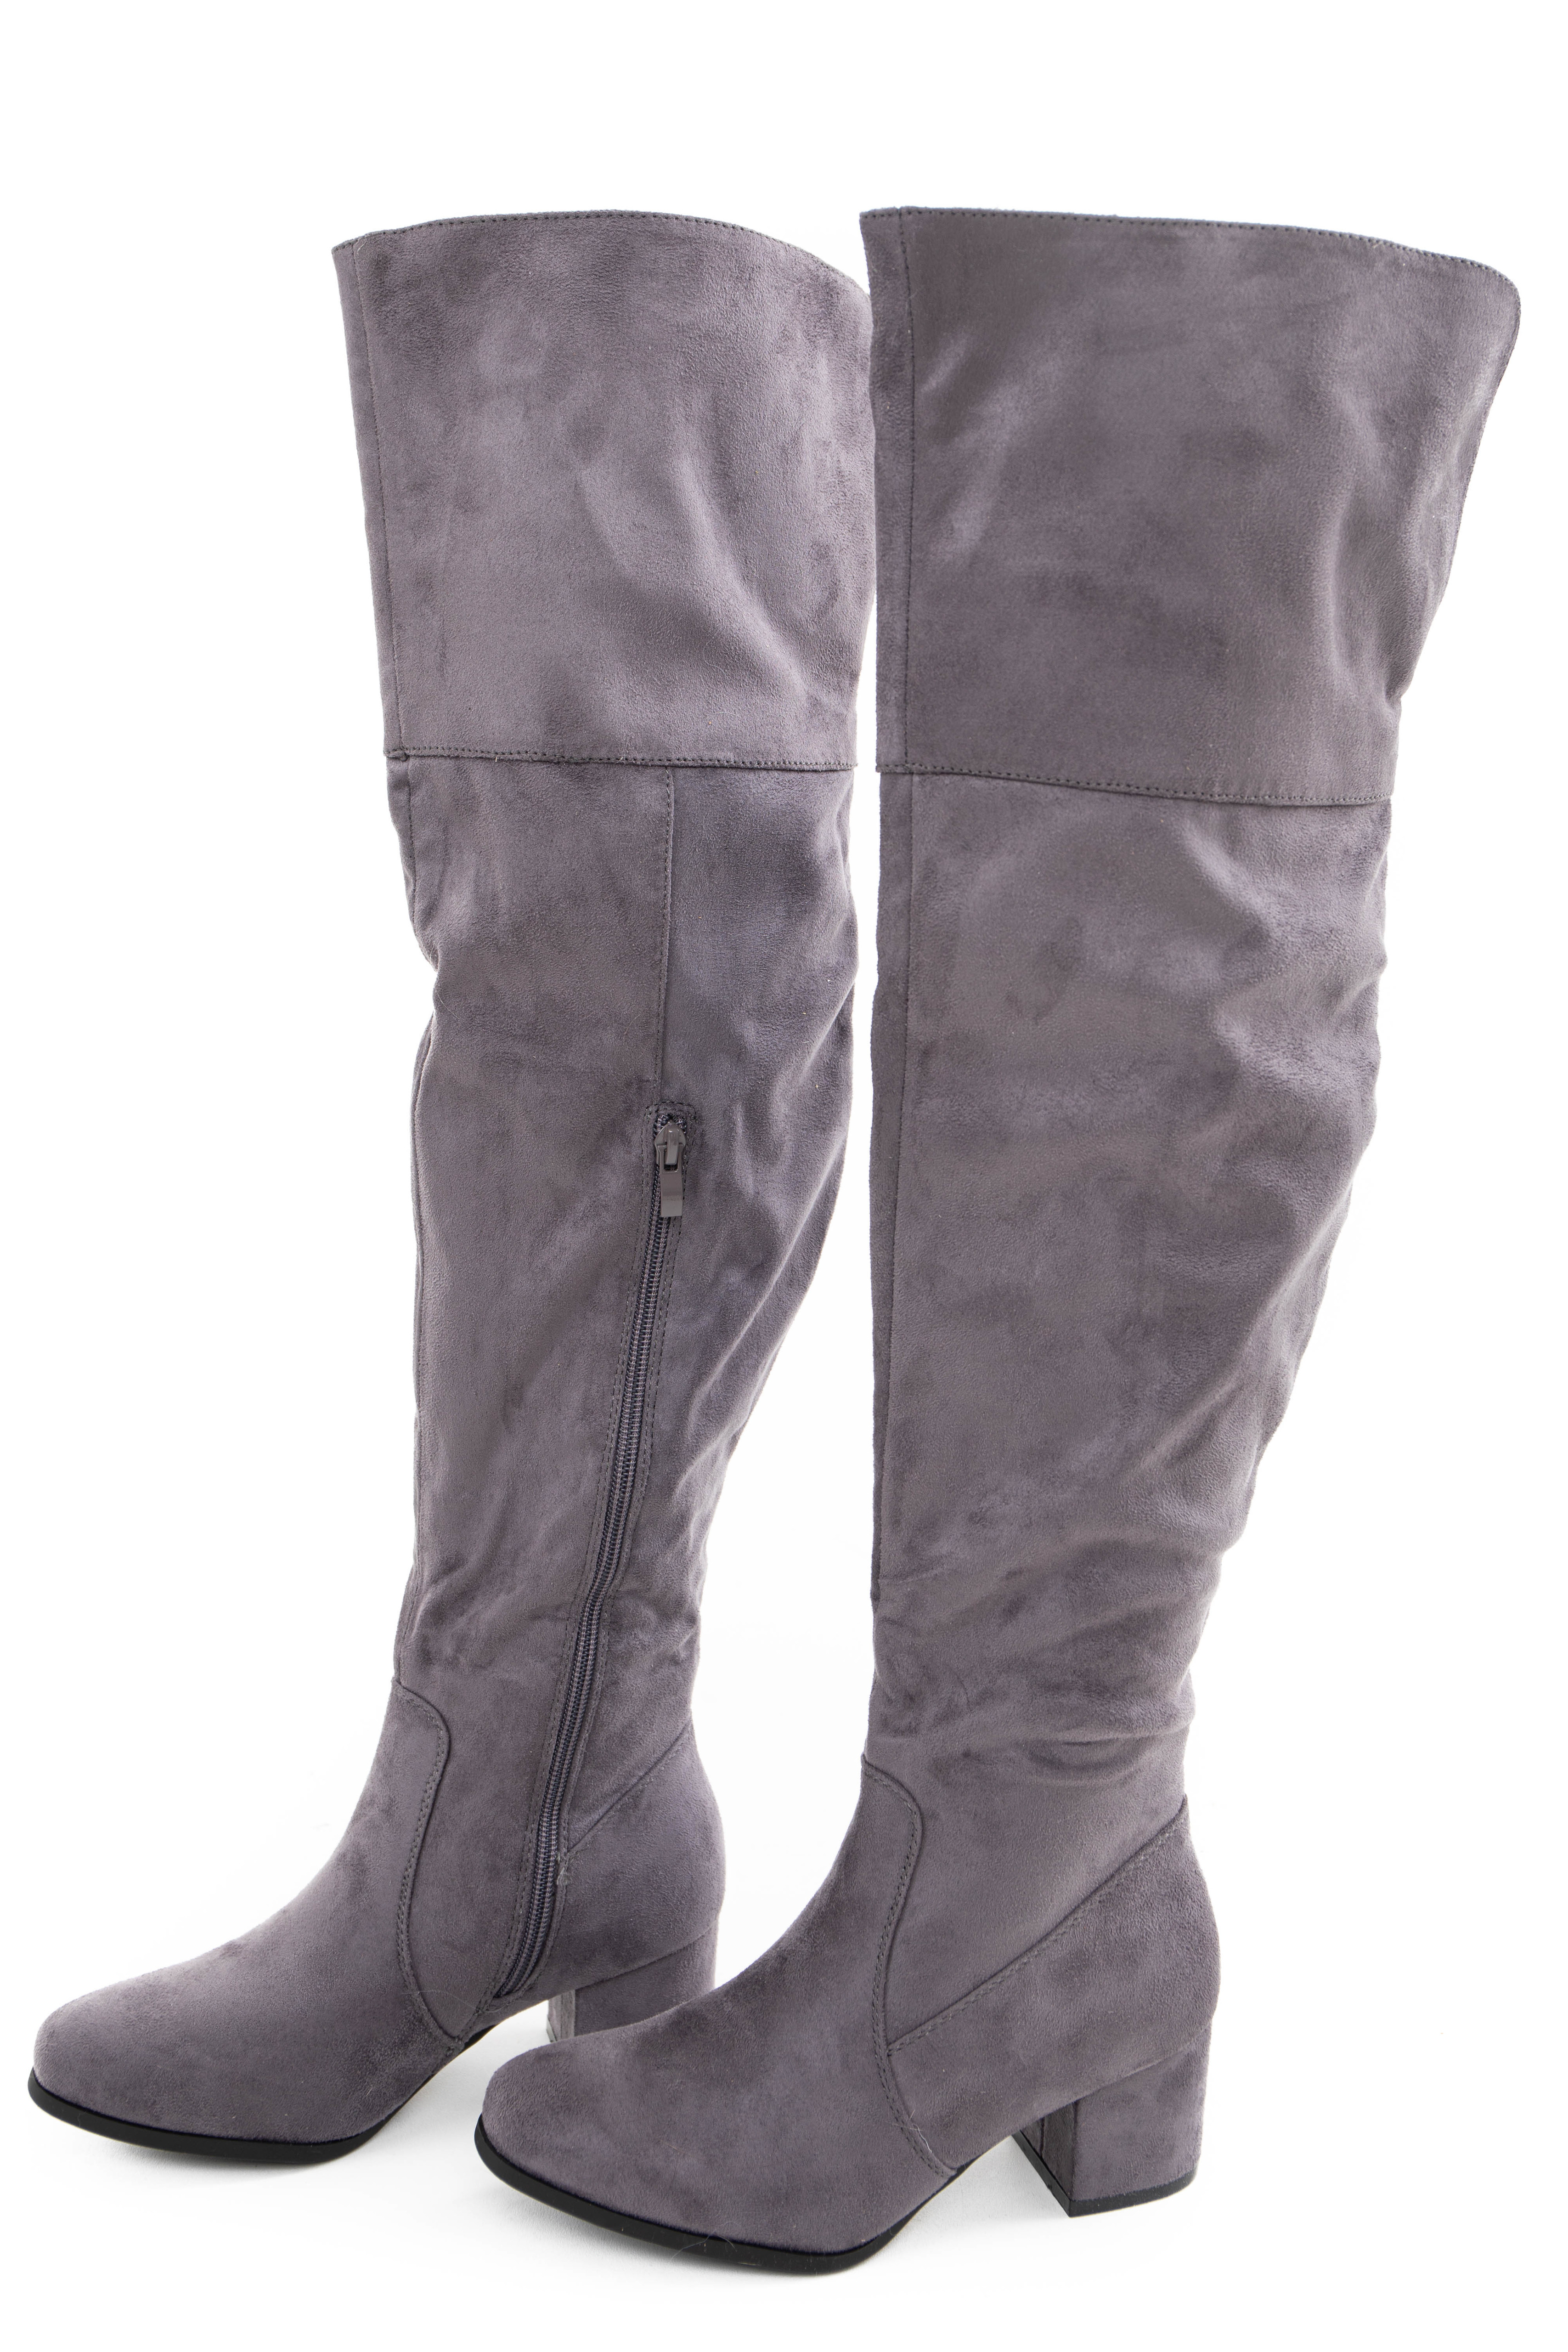 Charcoal Faux Suede Tall Fold Over Boot with Side Zipper